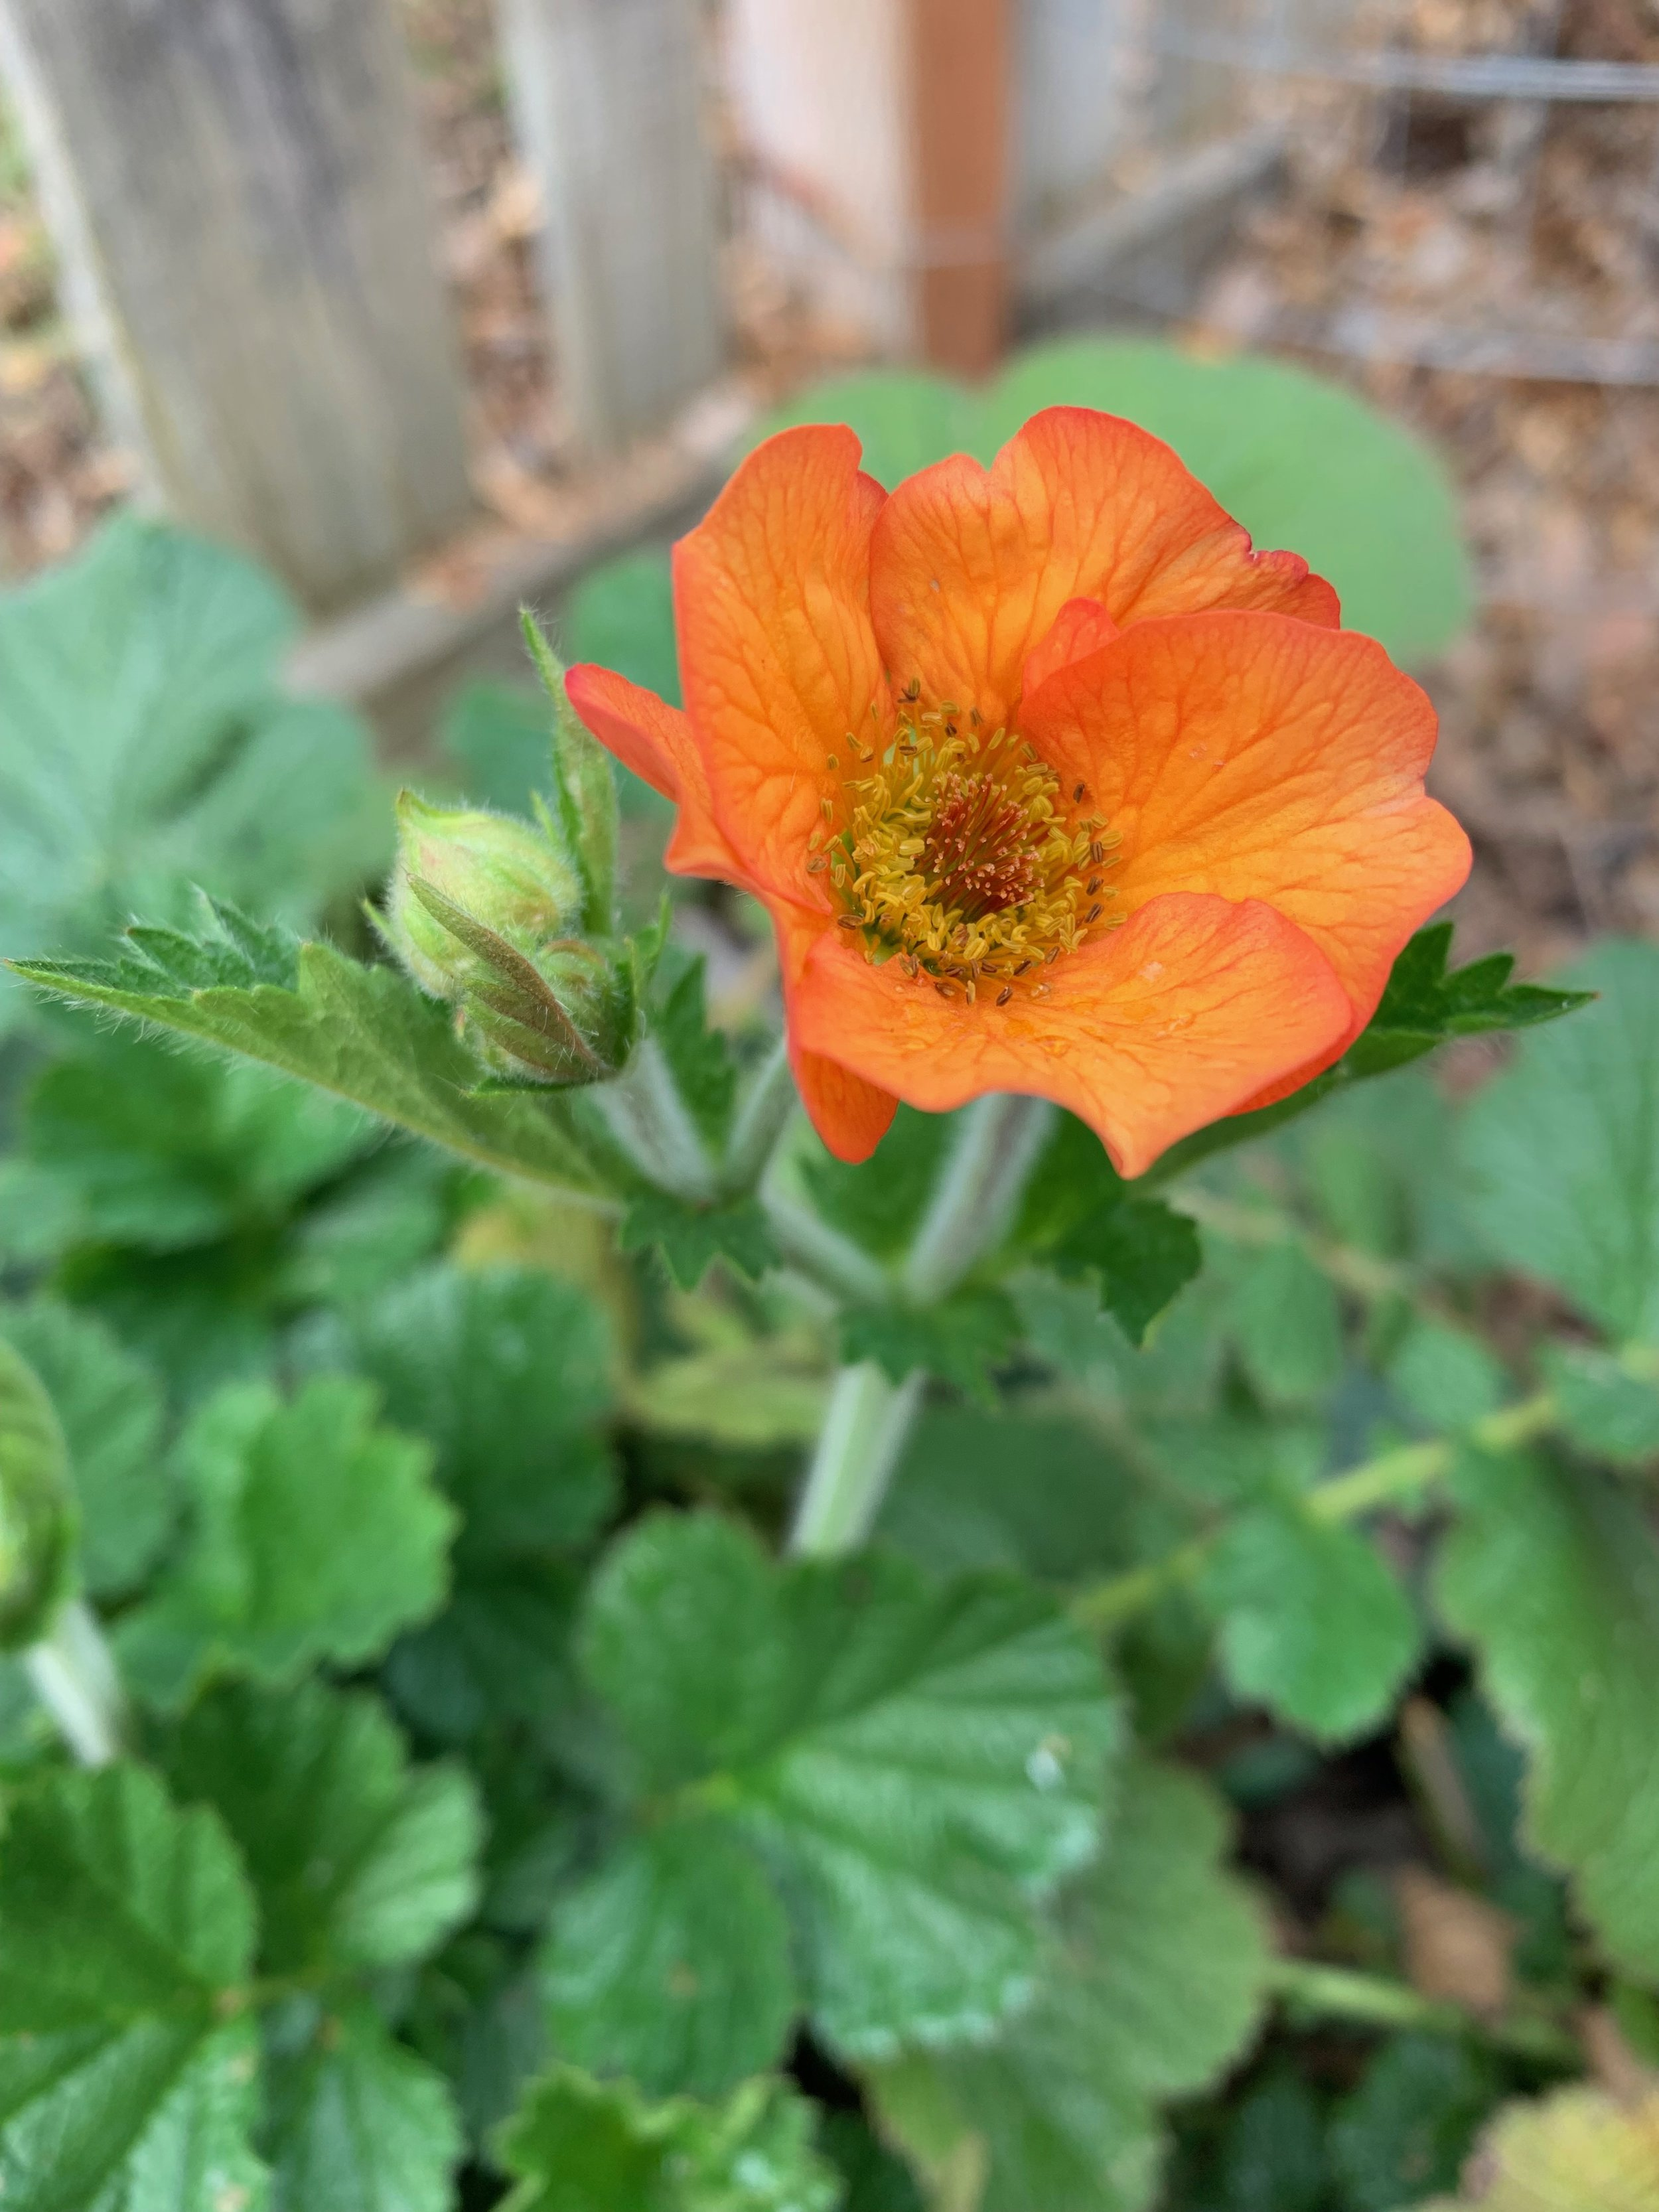 Believe it or not, some  Geum  plants are blooming!